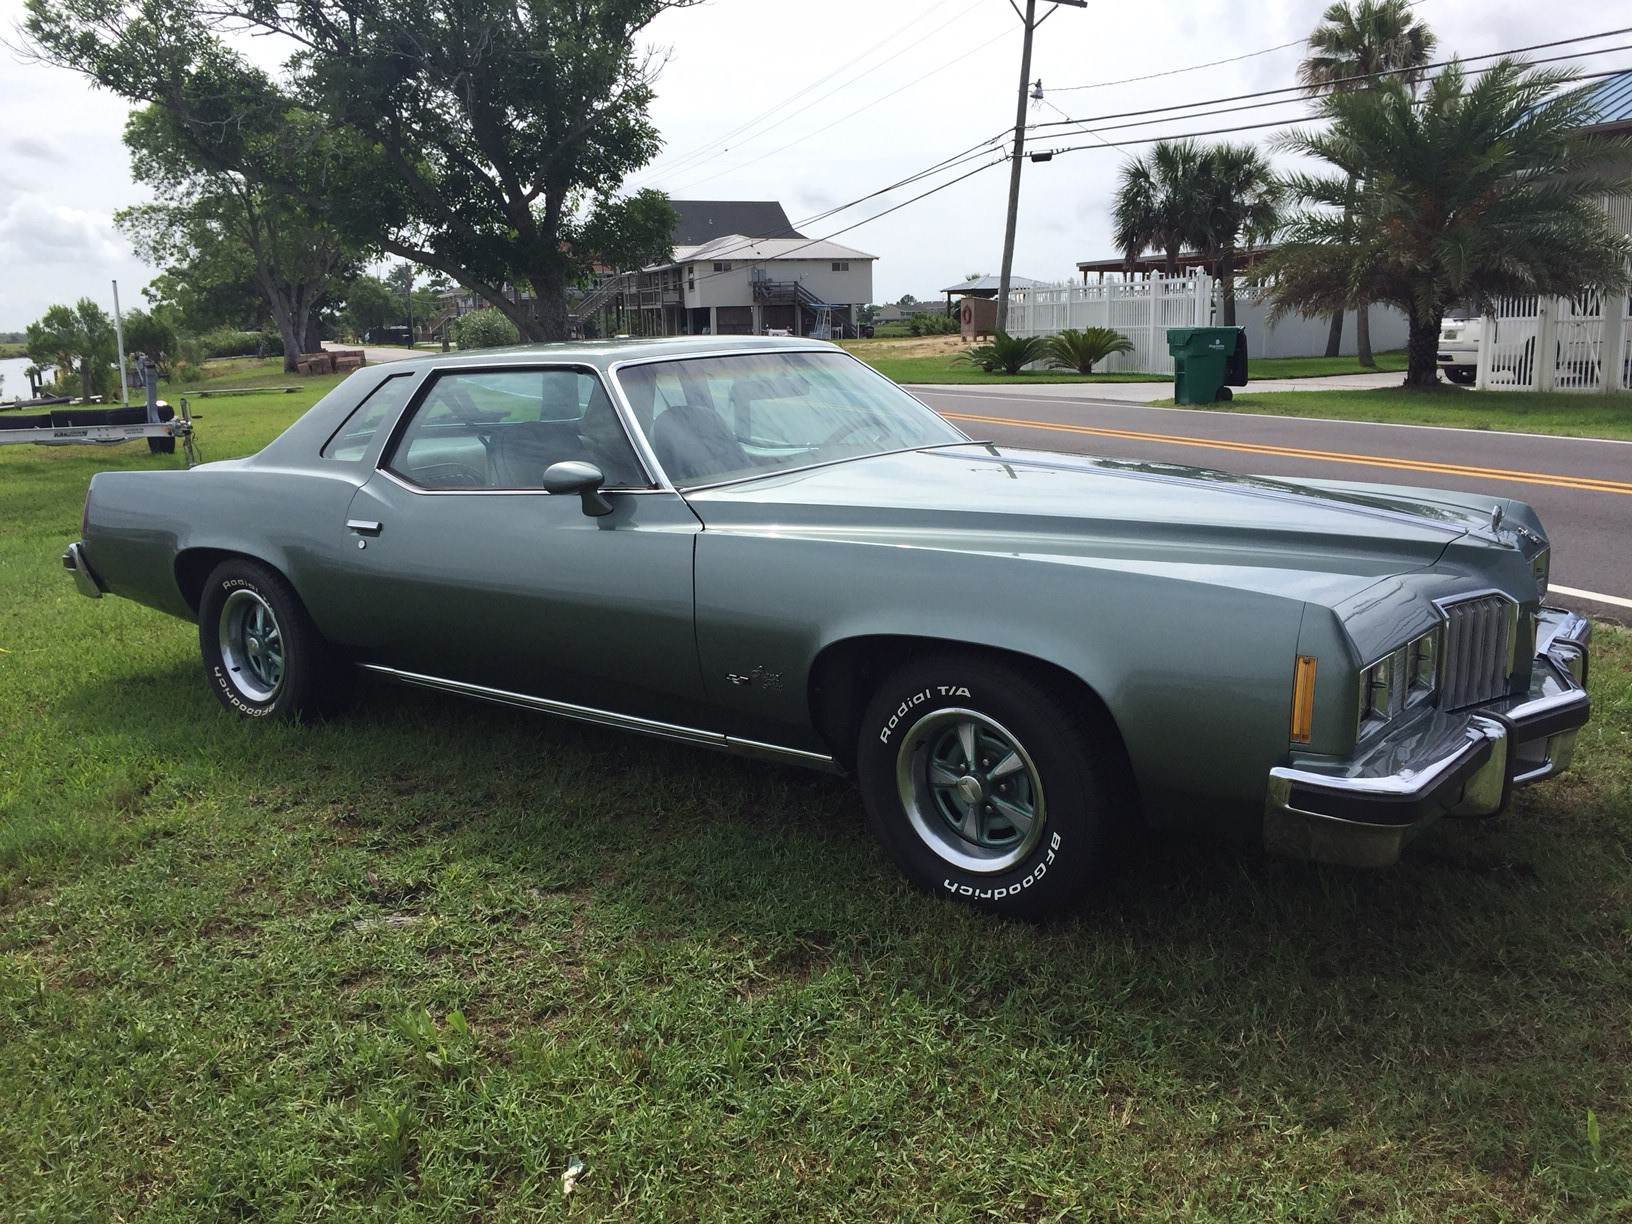 4th Image of a 1977 PONTIAC GRAND PRIX LJ